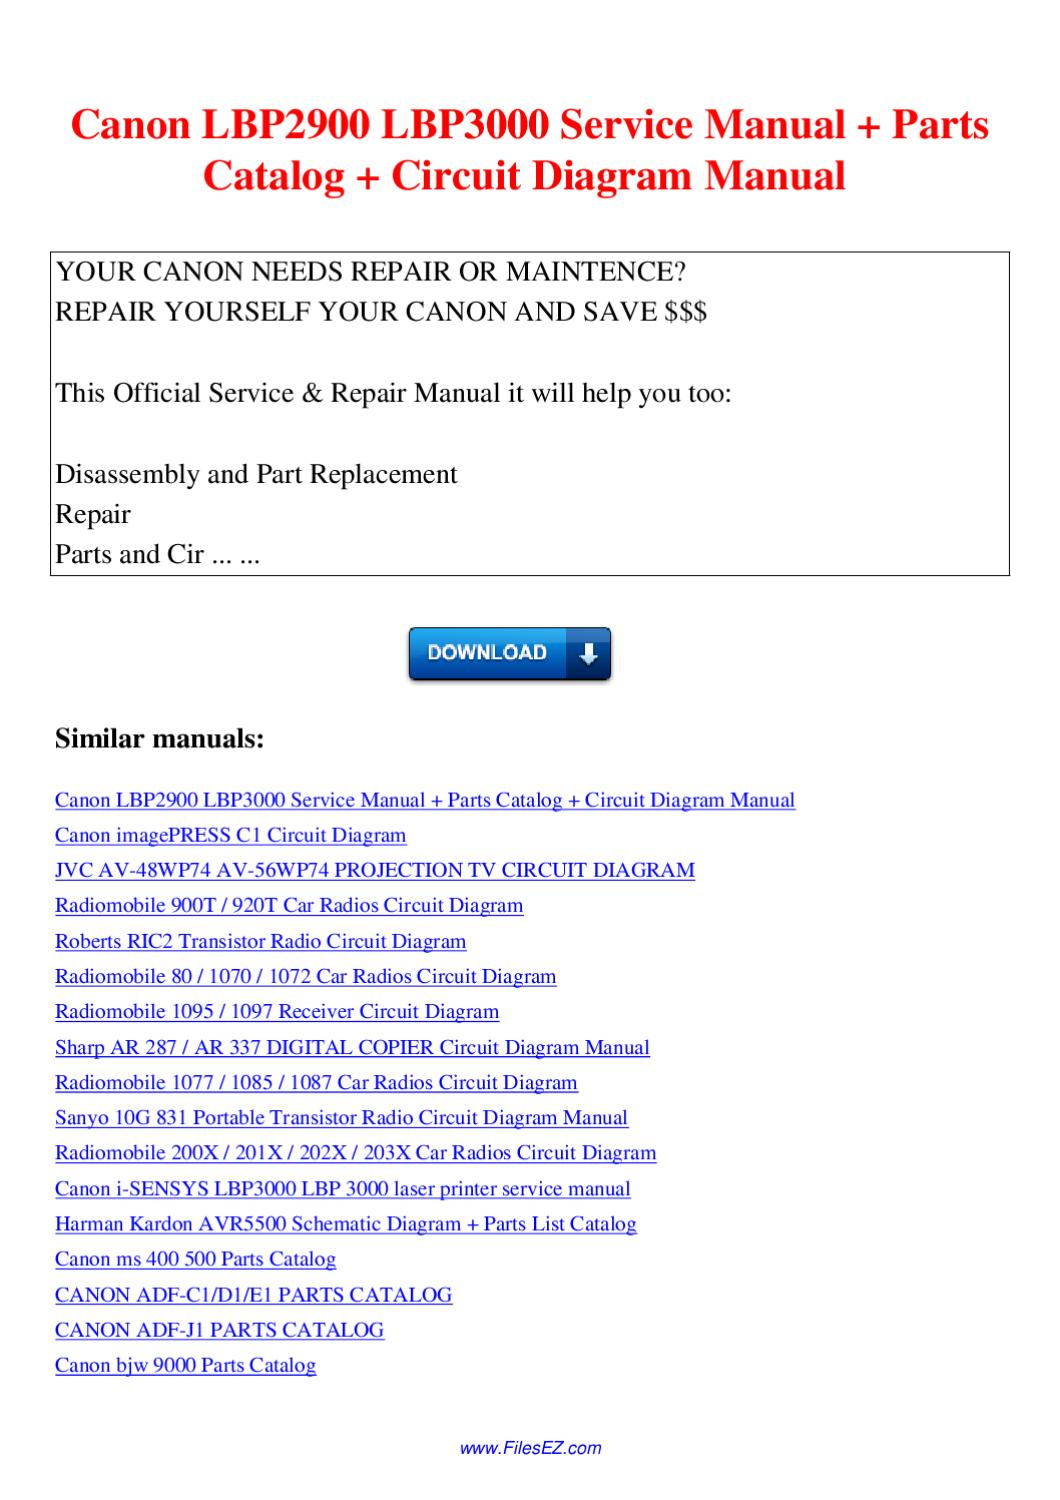 Canon Lbp2900 Lbp3000 Service Manual Parts Catalog Circuit